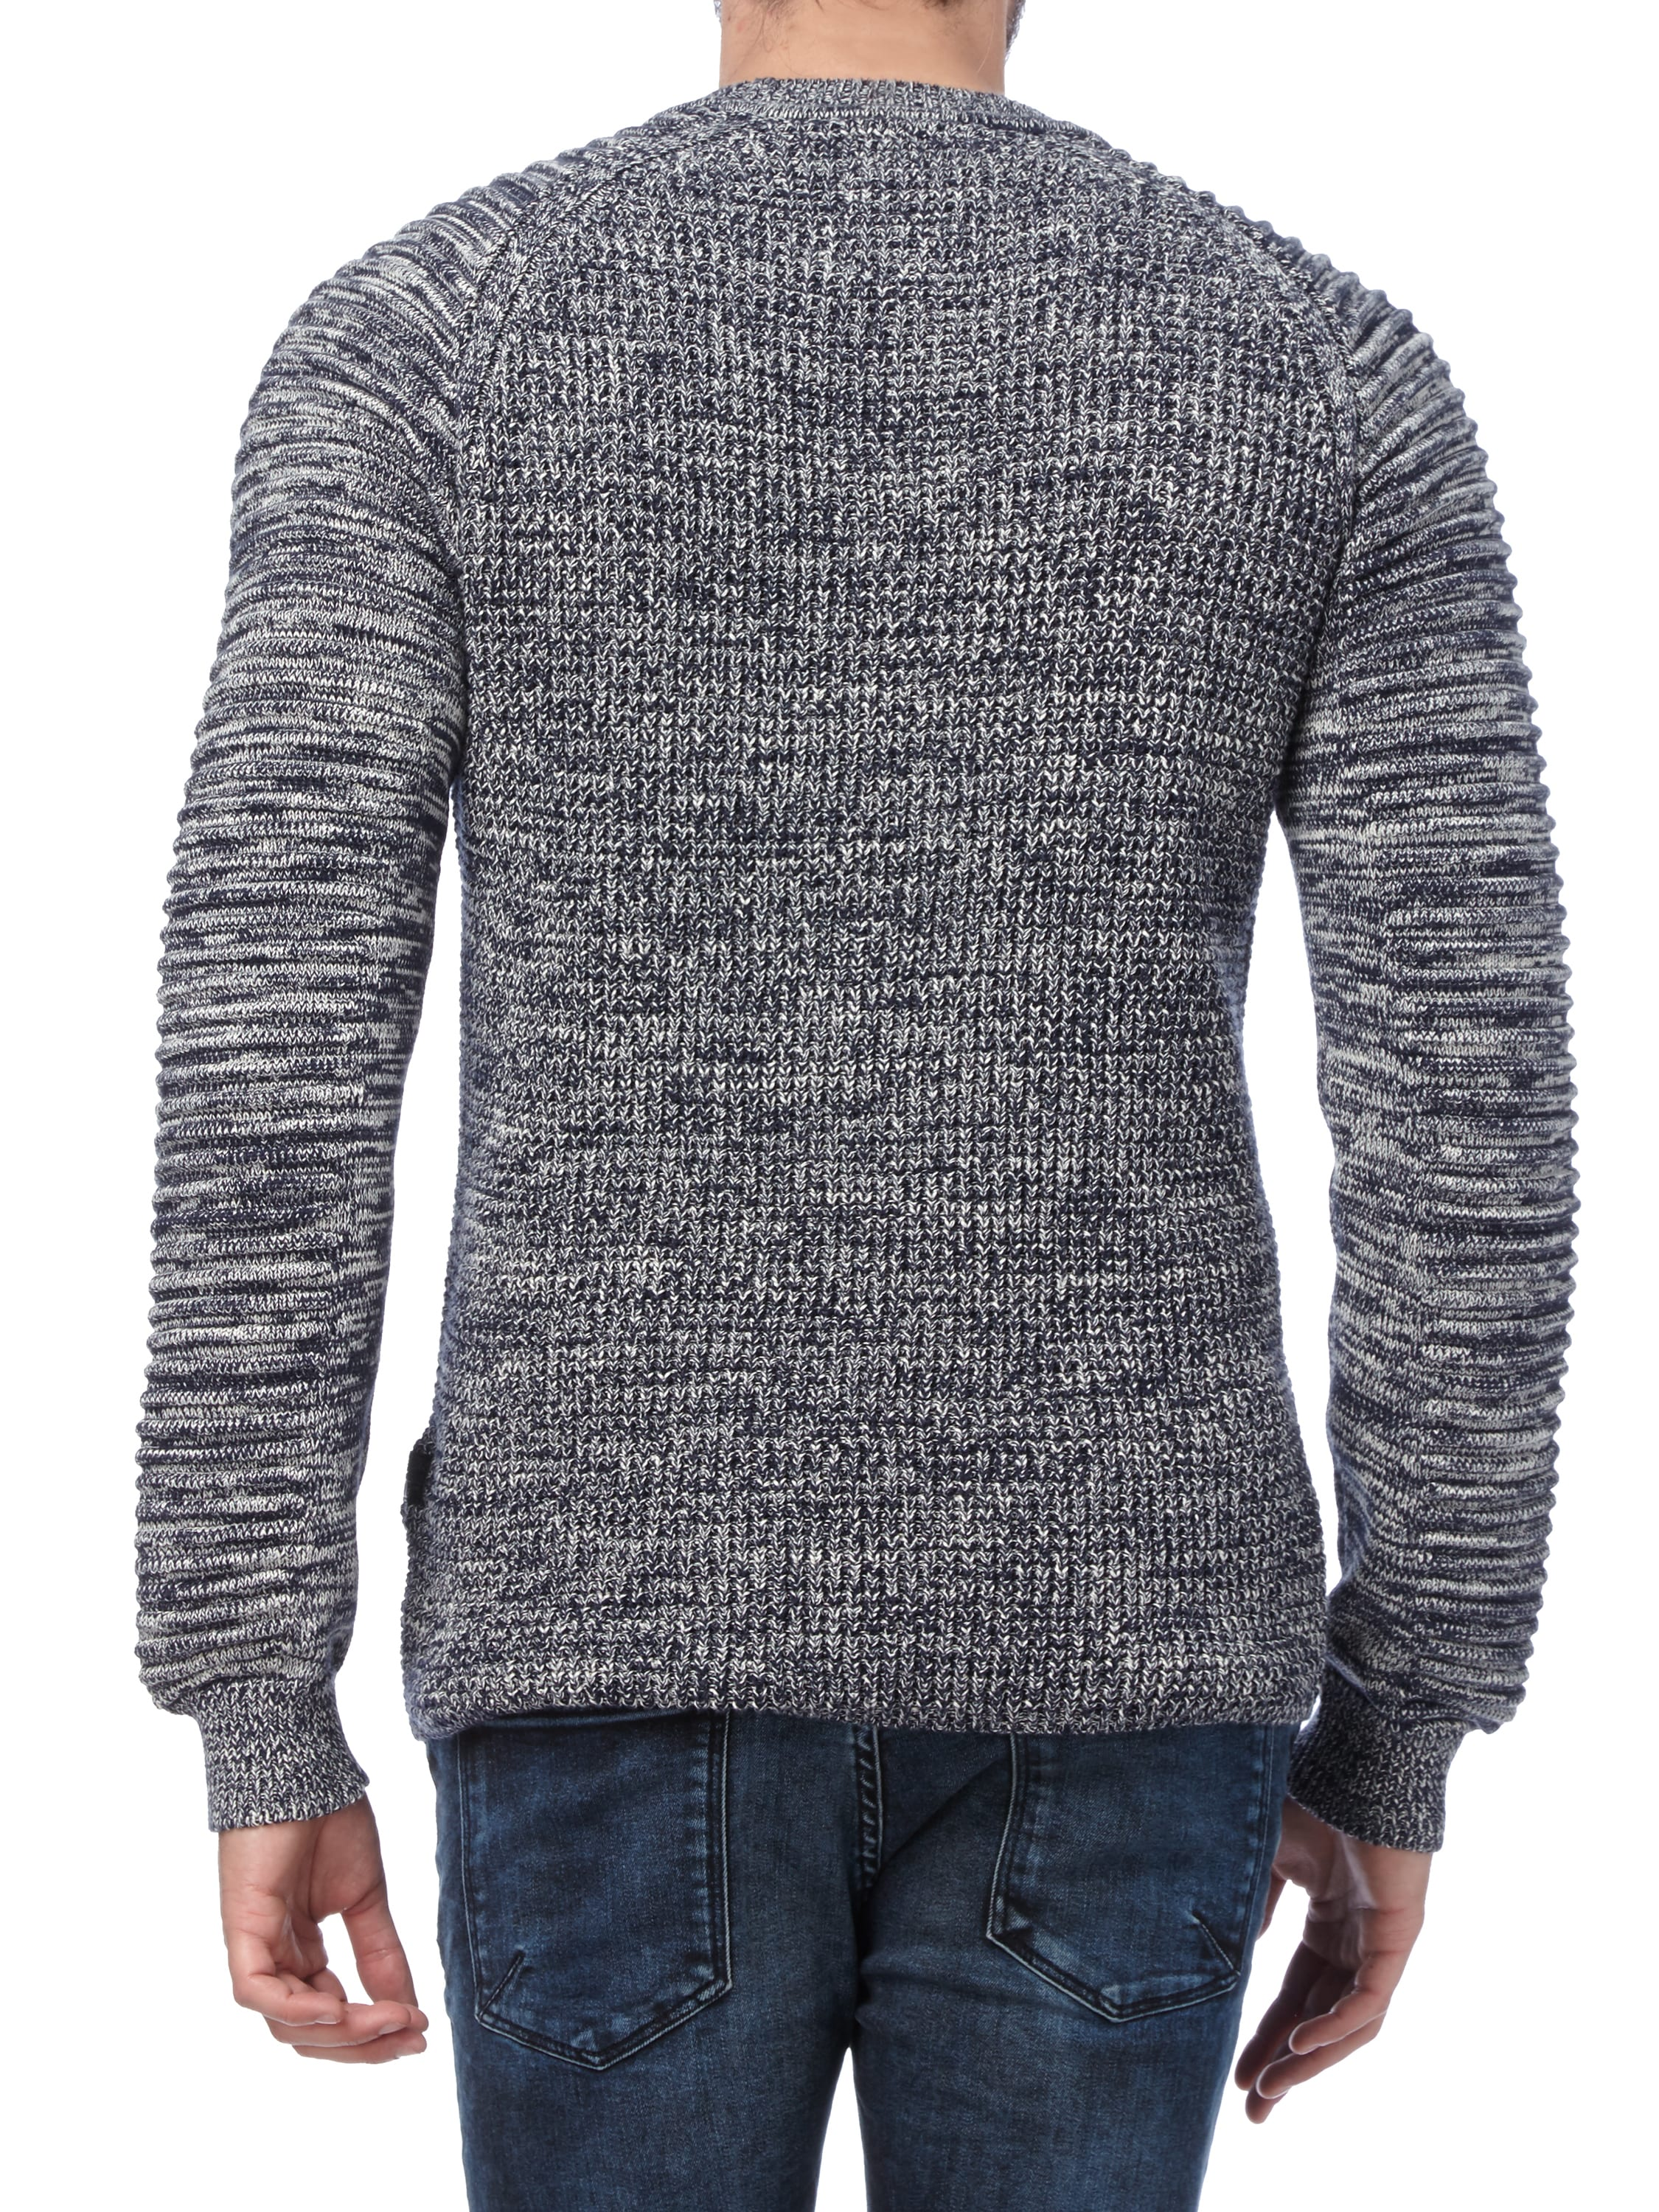 g star raw pullover mit raglan rmeln in blau t rkis online kaufen 9529496 p c online shop. Black Bedroom Furniture Sets. Home Design Ideas